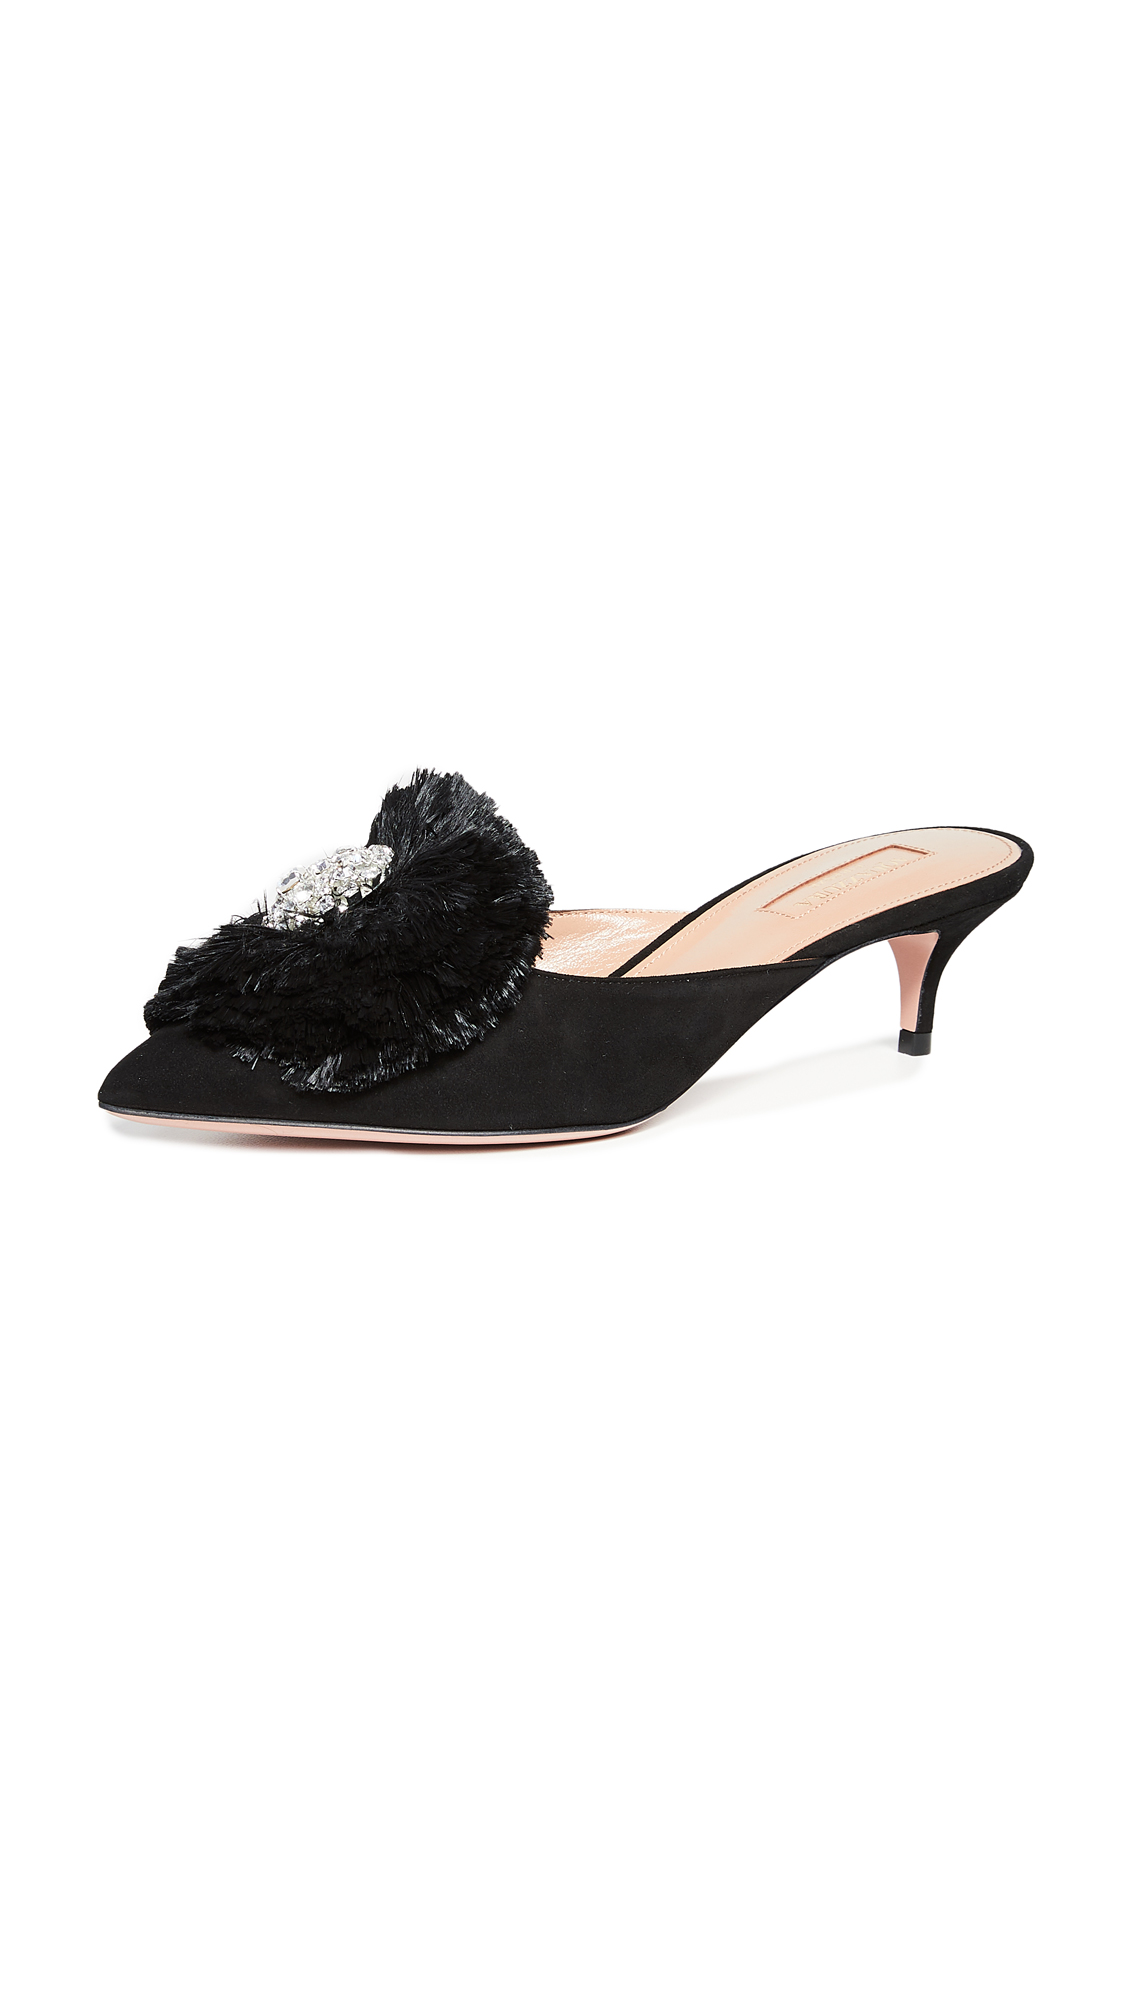 Aquazzura Crystal Lotus 45 Mules - Black